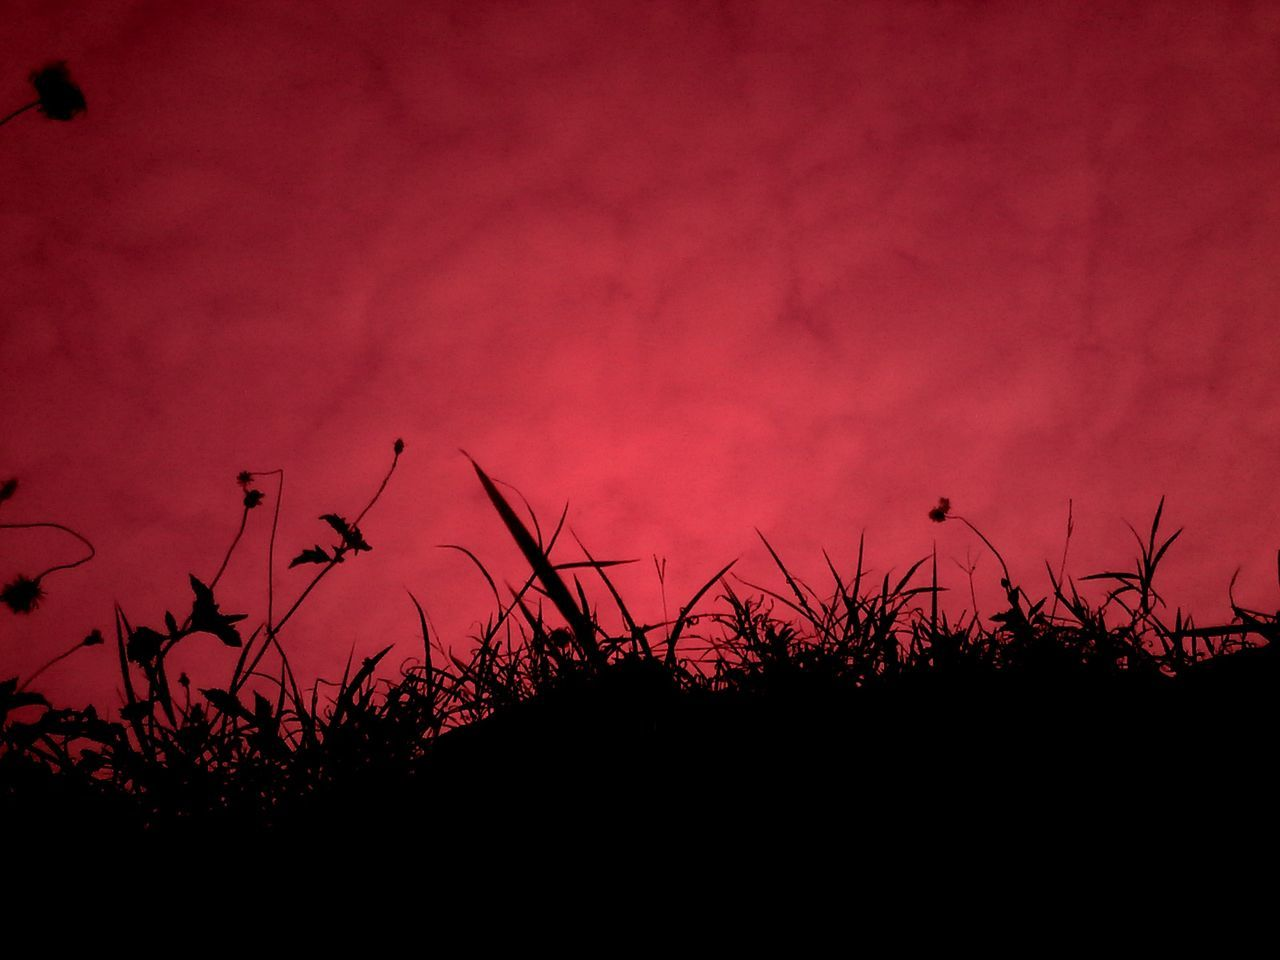 silhouette, nature, sunset, plant, no people, outdoors, growth, tranquility, beauty in nature, red, sky, night, tree, close-up